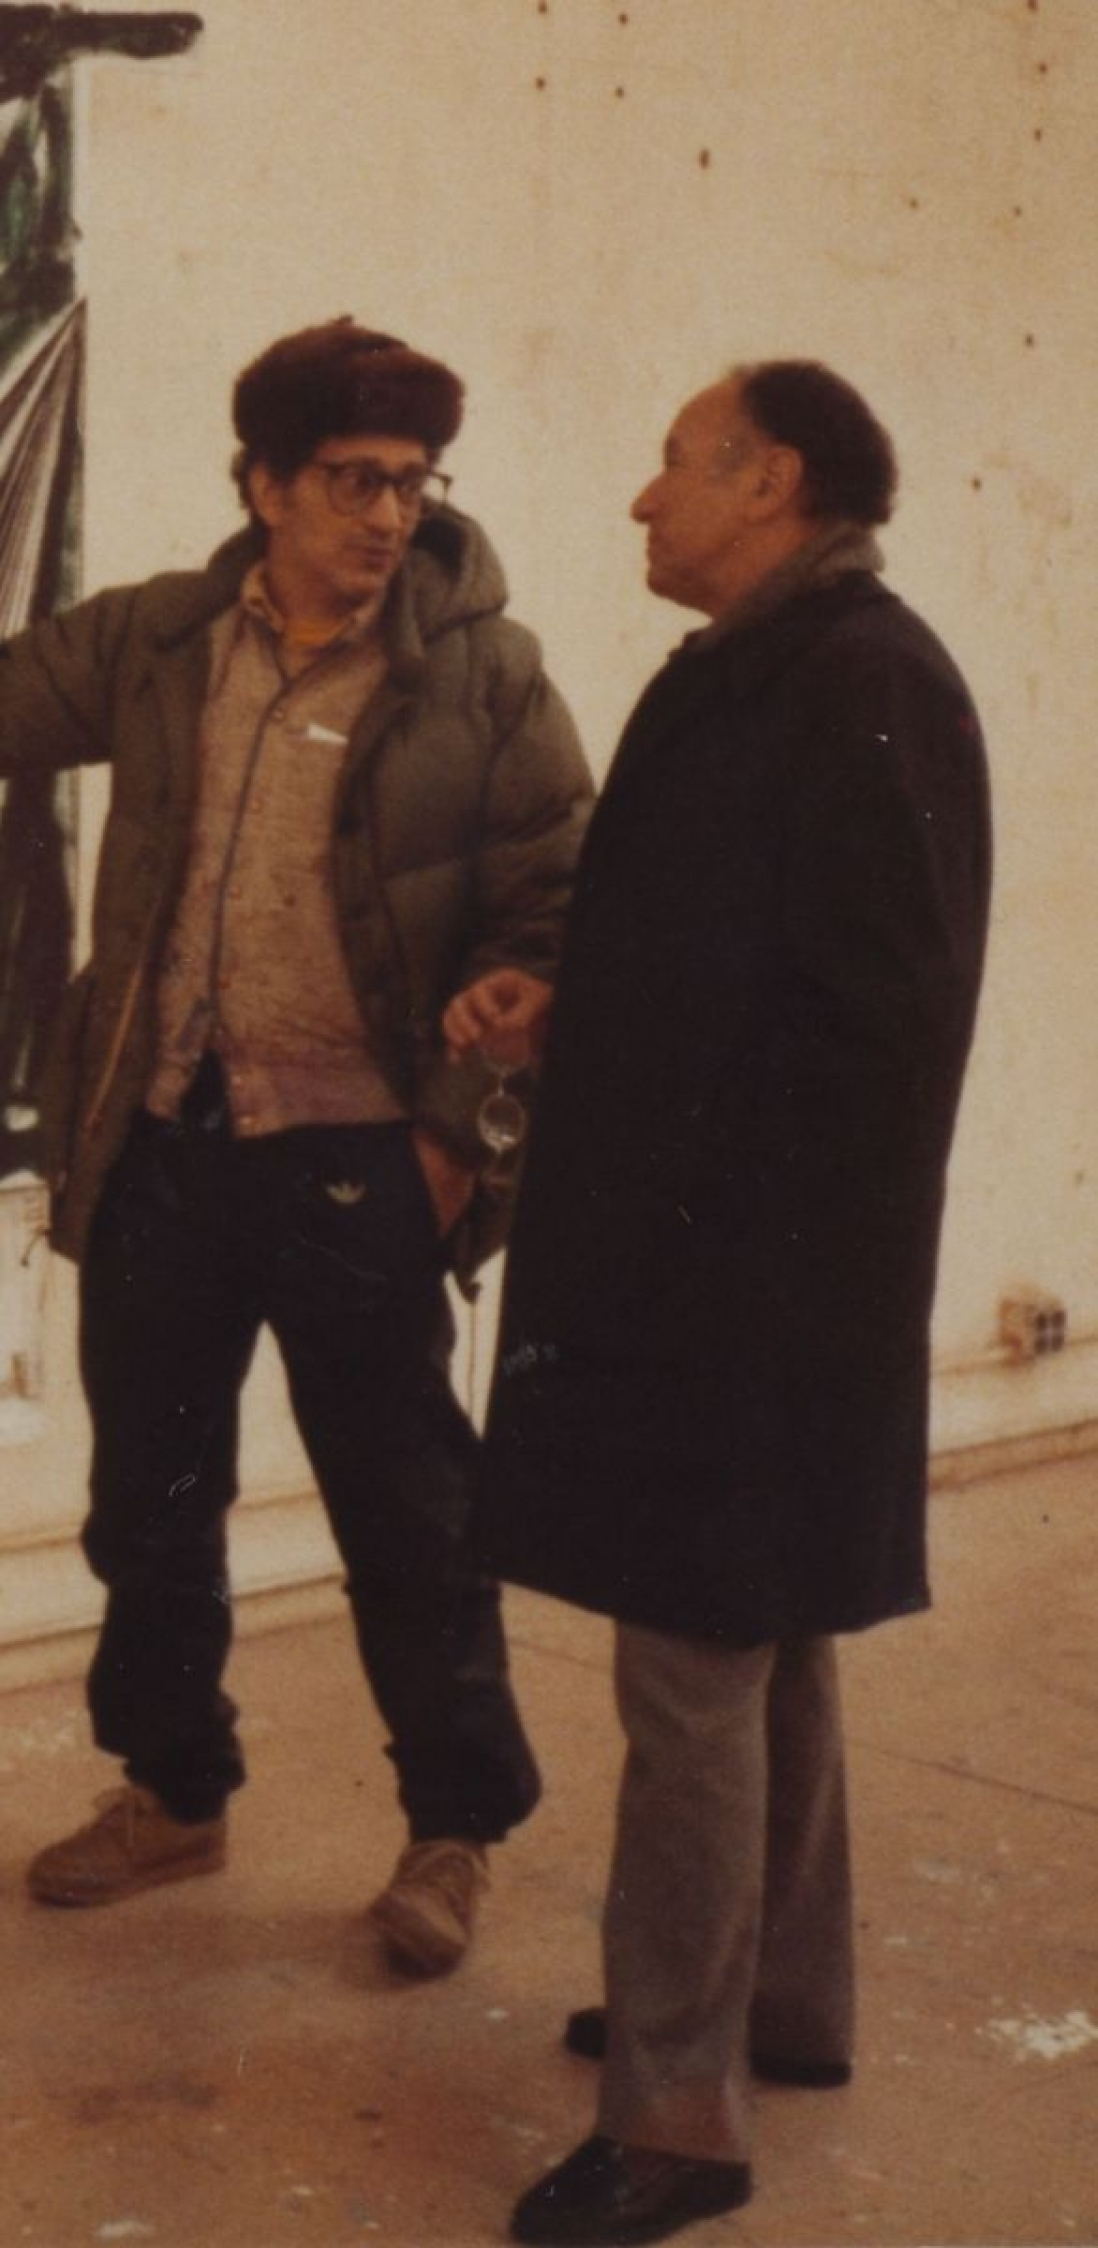 This is a colour photo of two men dressed in coats, one in a warm hat gesturing to something off screen, standing near a concrete wall